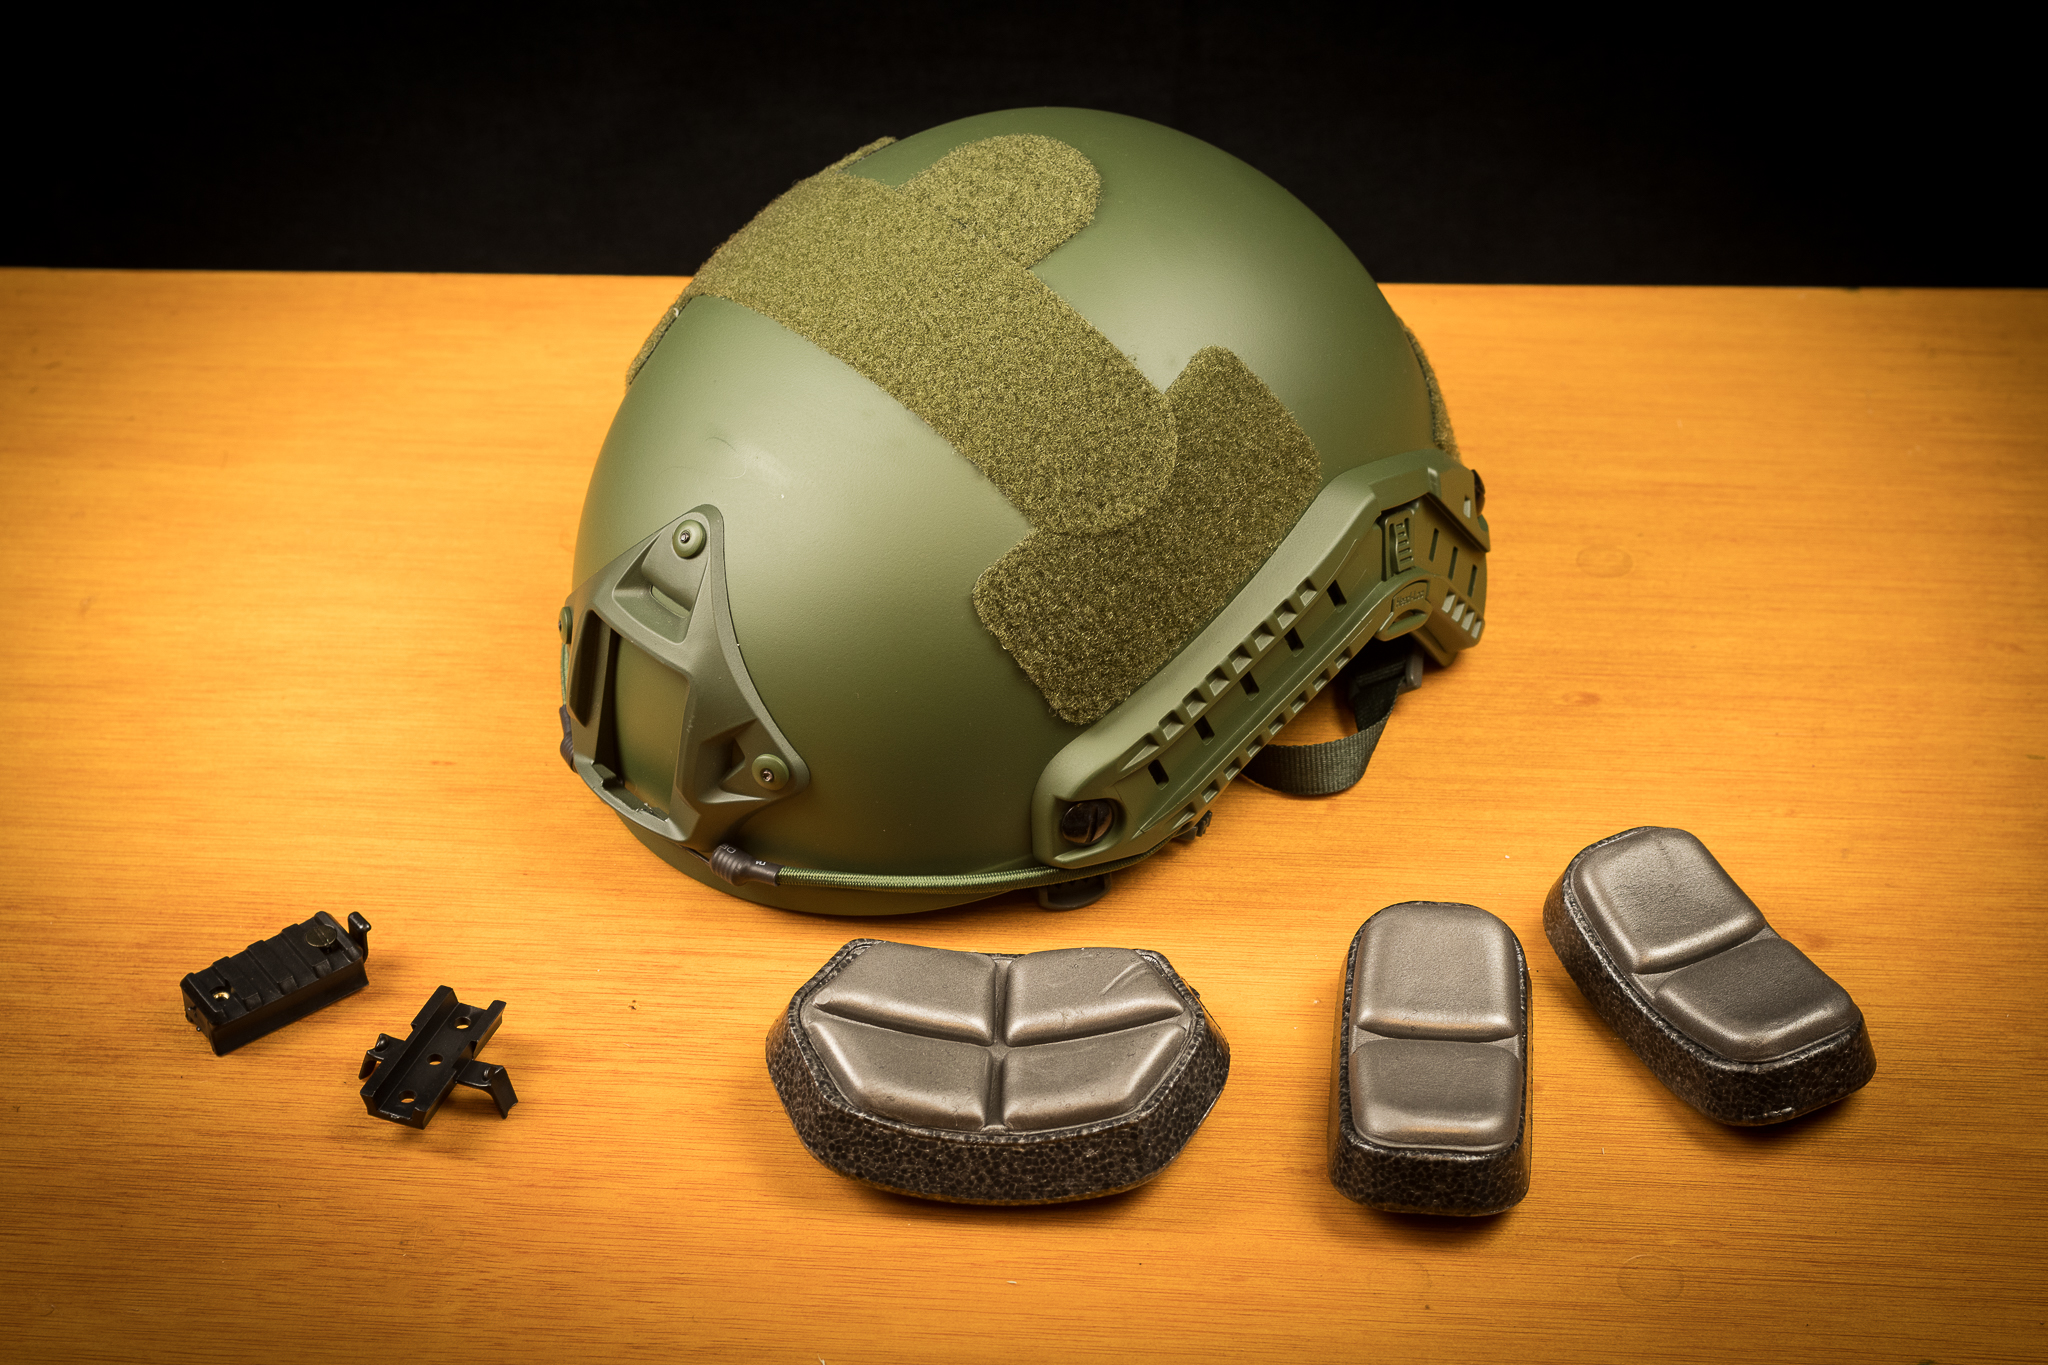 Viper FAST Helmet with Accessories